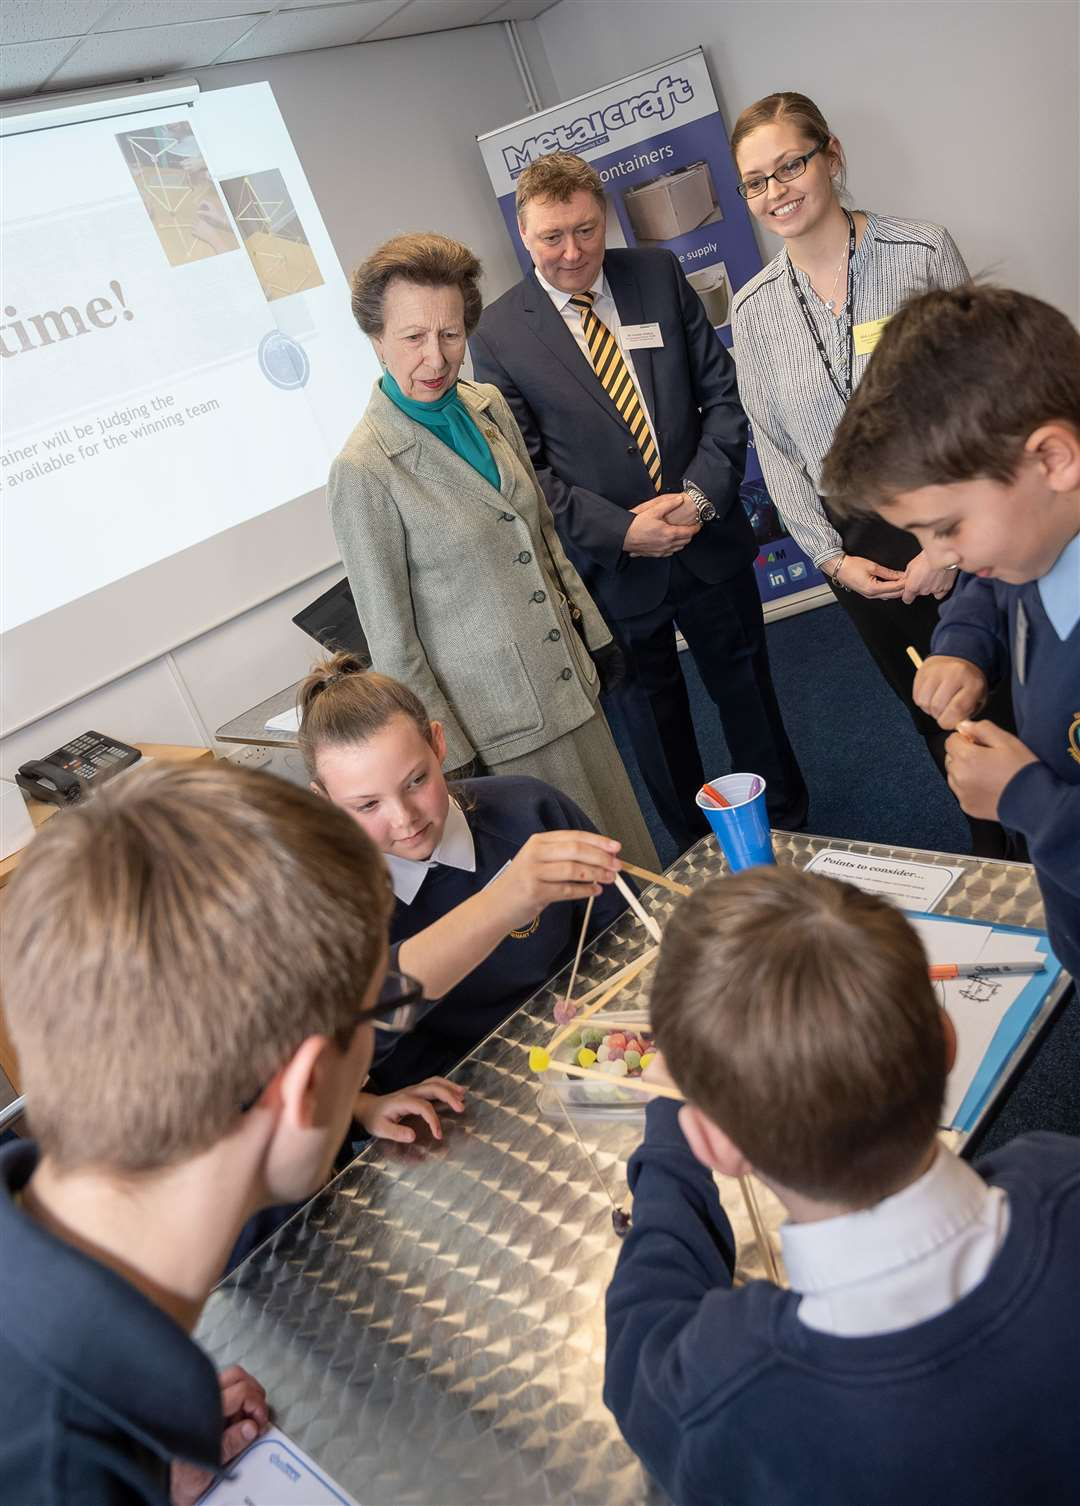 Princess Anne watches Kingsfield Pupils work alongside apprentices to solve an engineering task to build a tall tower using sticks and sweets. (8155789)